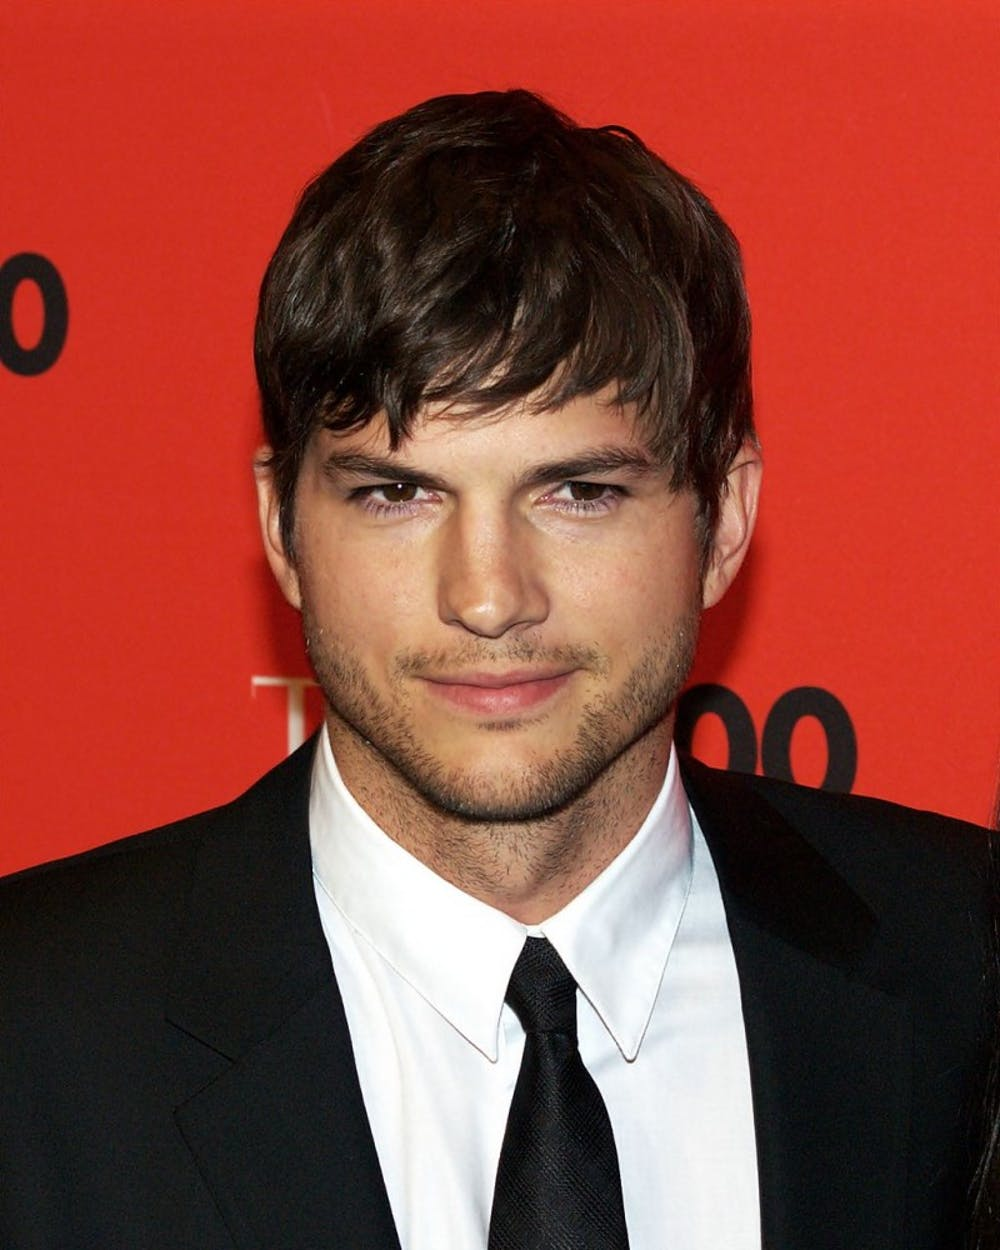 Ashton Kutcher, the popular actor and movie producer, will speak to students as part of a Wharton Social Impact Initiative speaker series.